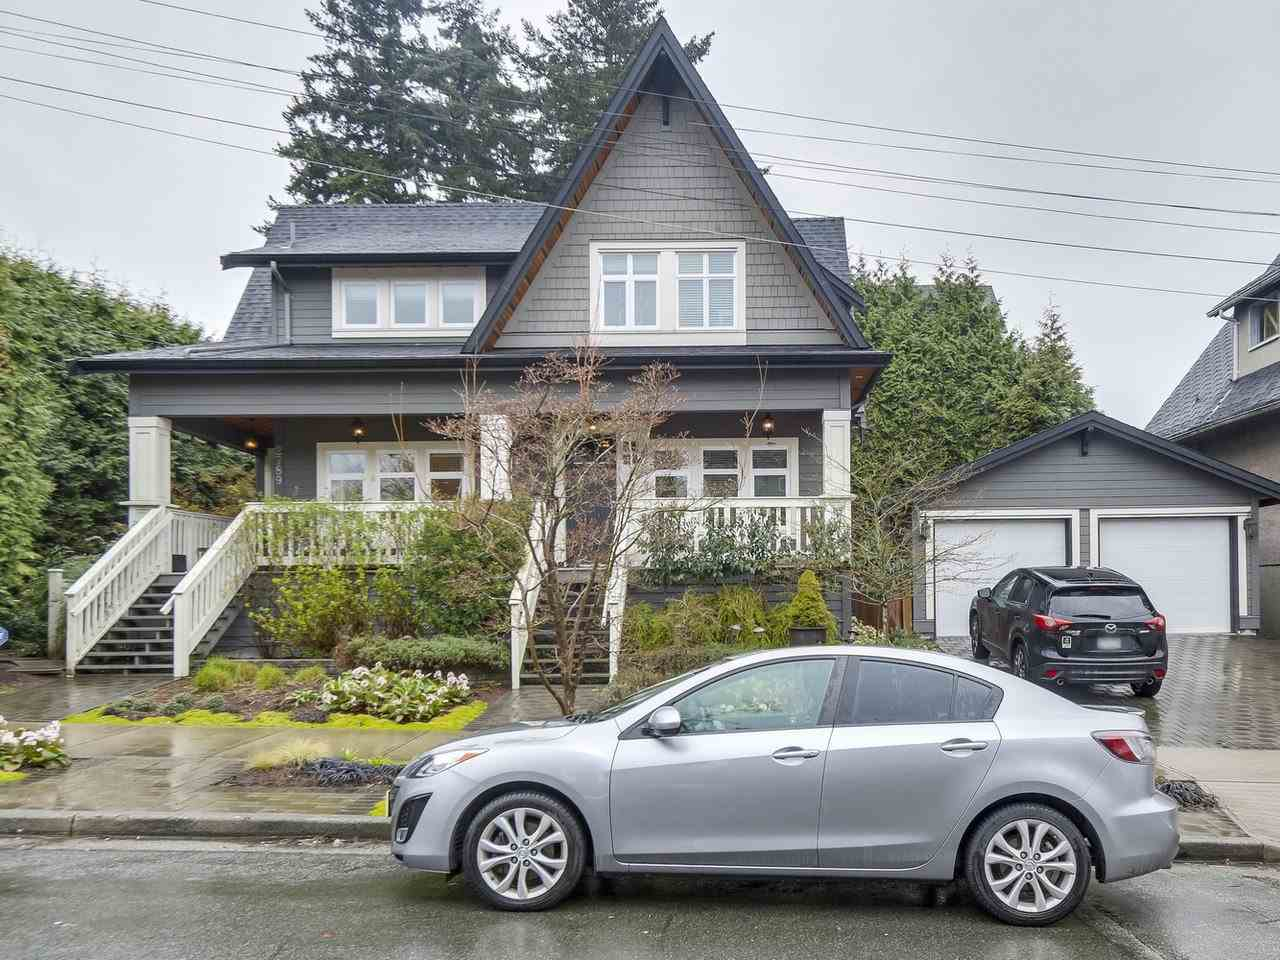 Main Photo: 2789 ST. CATHERINES Street in Vancouver: Mount Pleasant VE House 1/2 Duplex for sale (Vancouver East)  : MLS®# R2254713